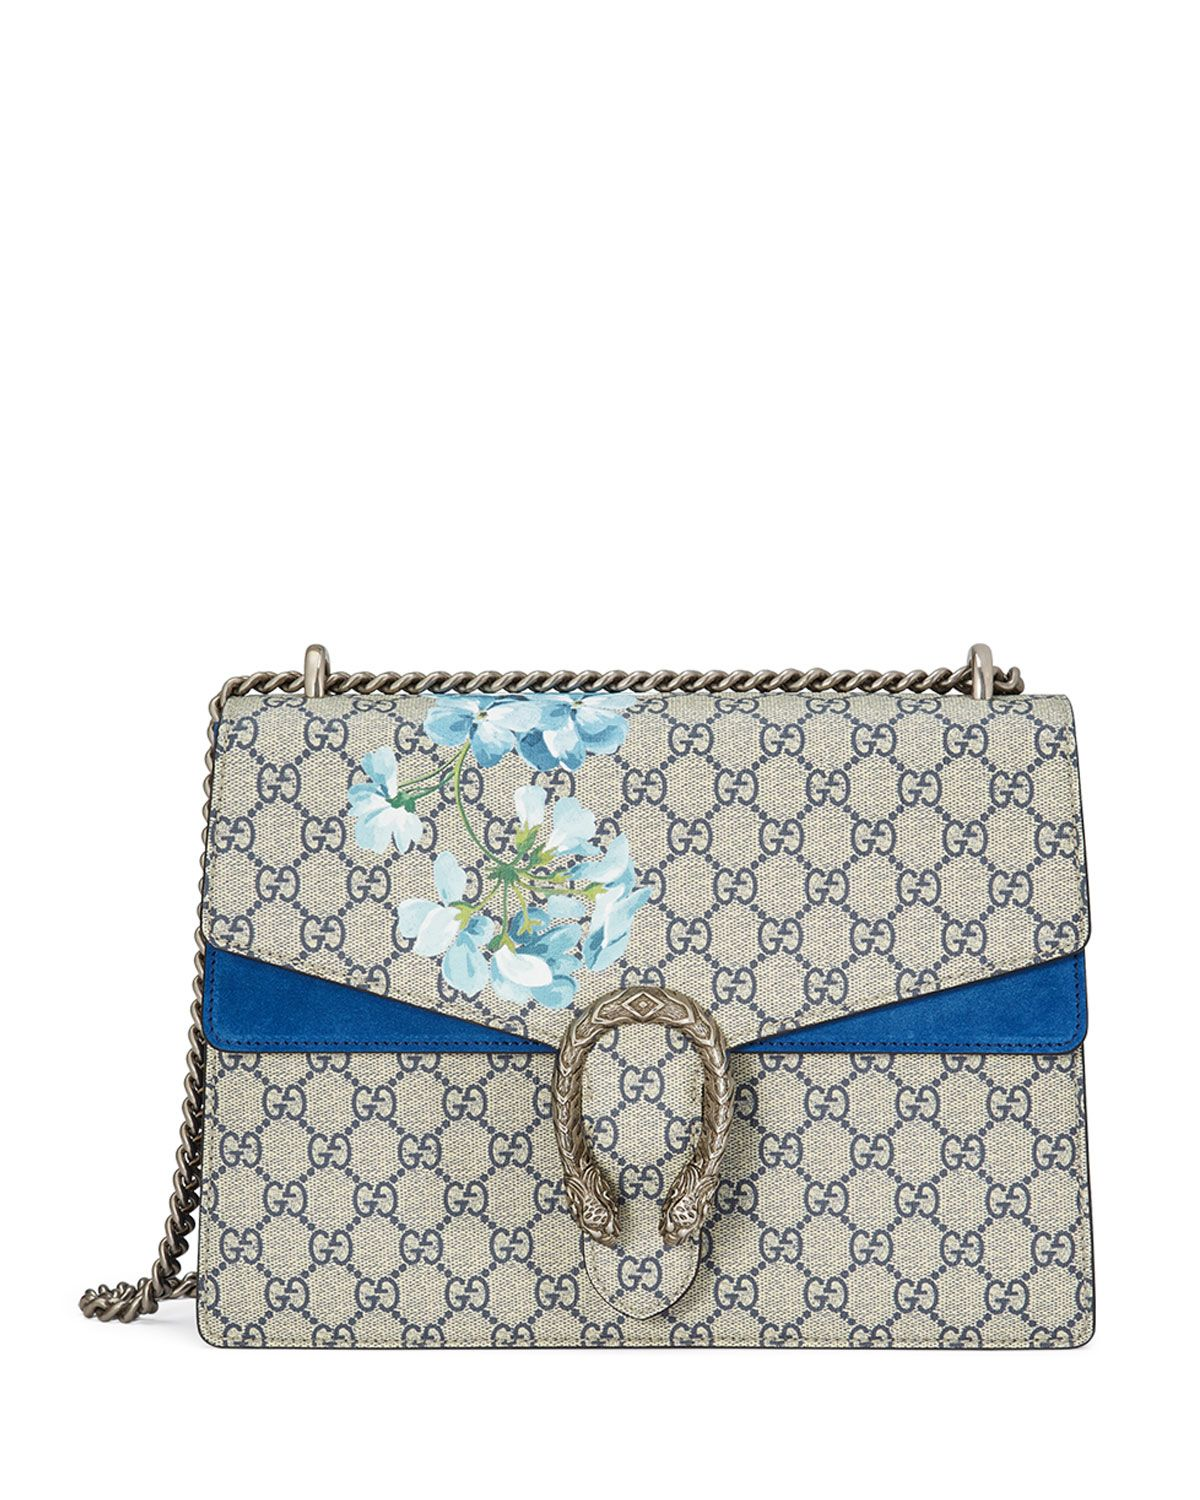 cc3d276e1bc Gucci Dionysus GG Blooms Medium Shoulder Bag